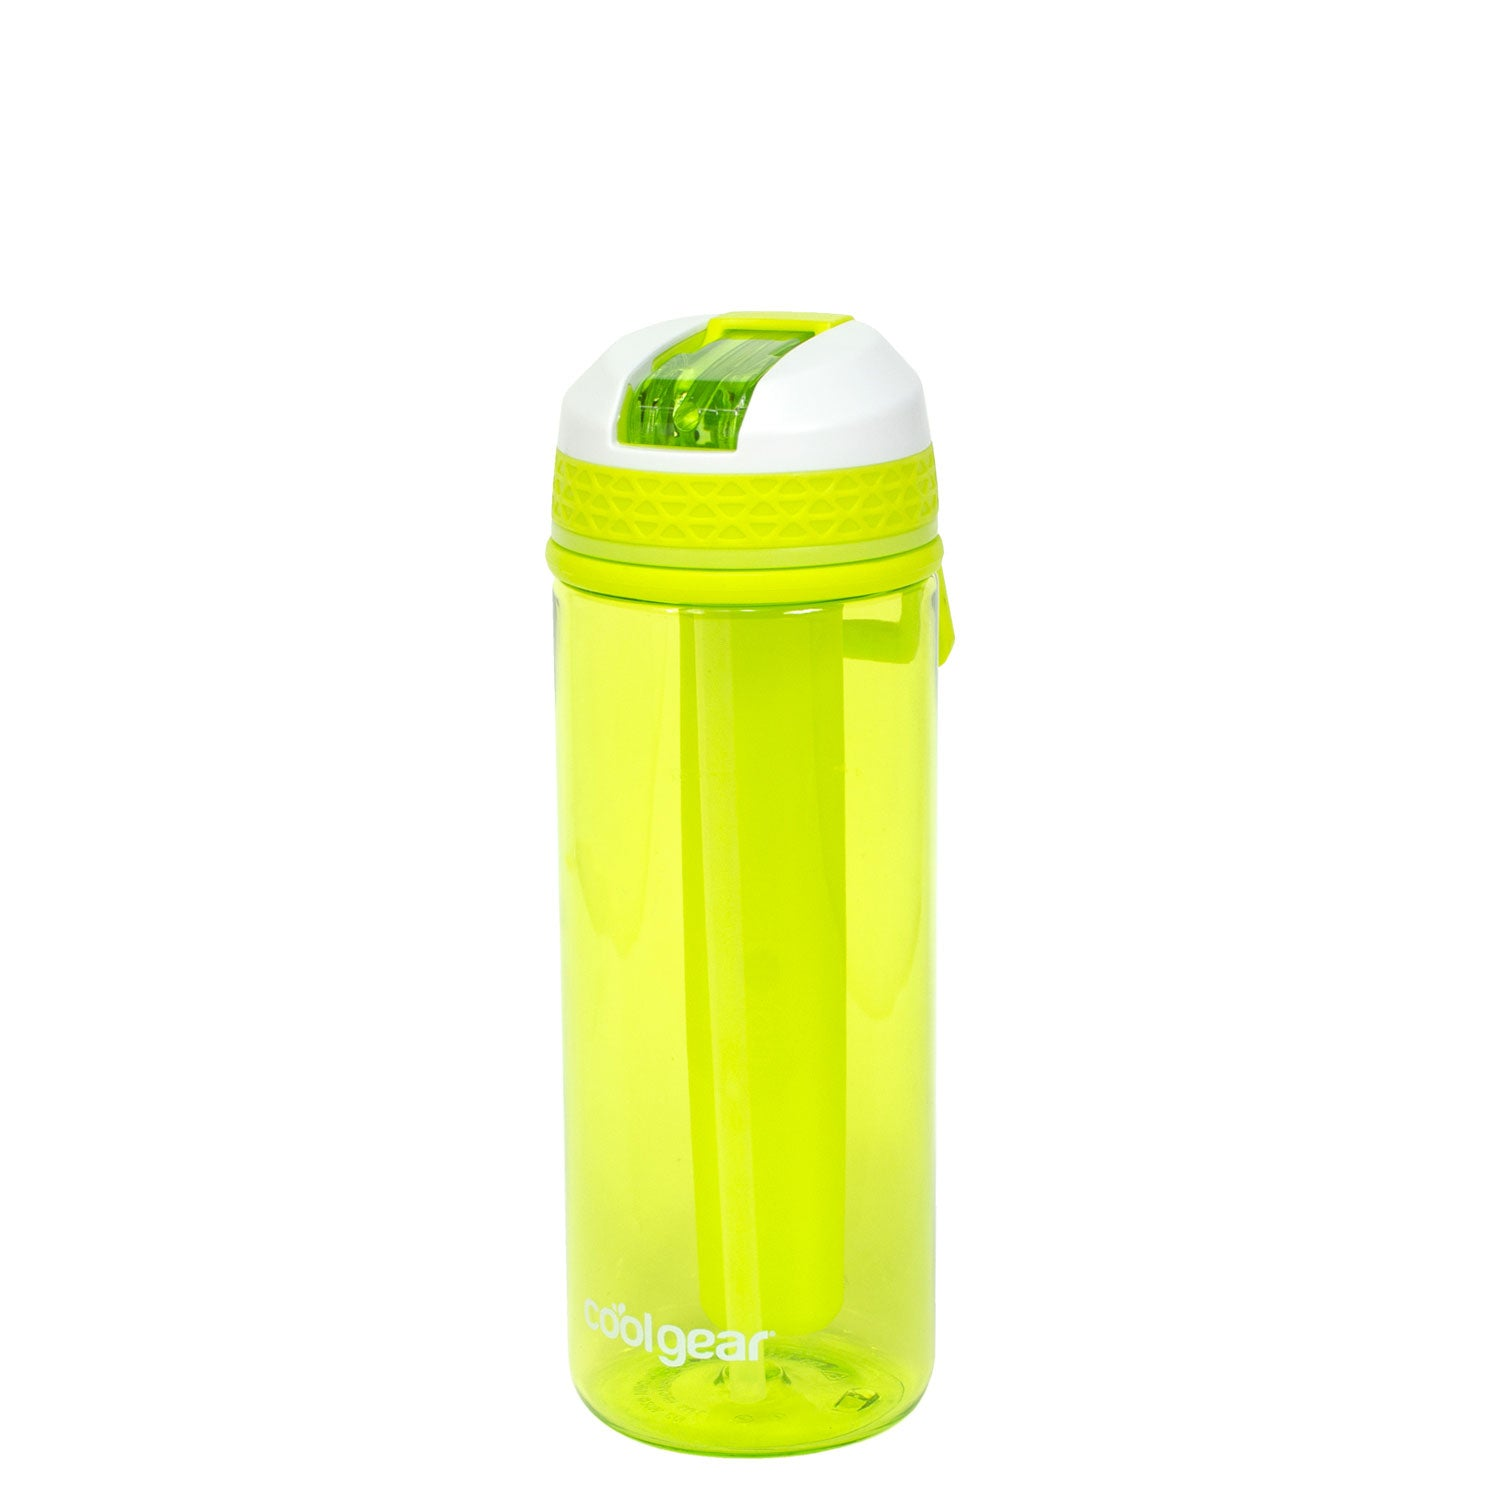 17e7b82a70d System 24 Oz Water Bottle